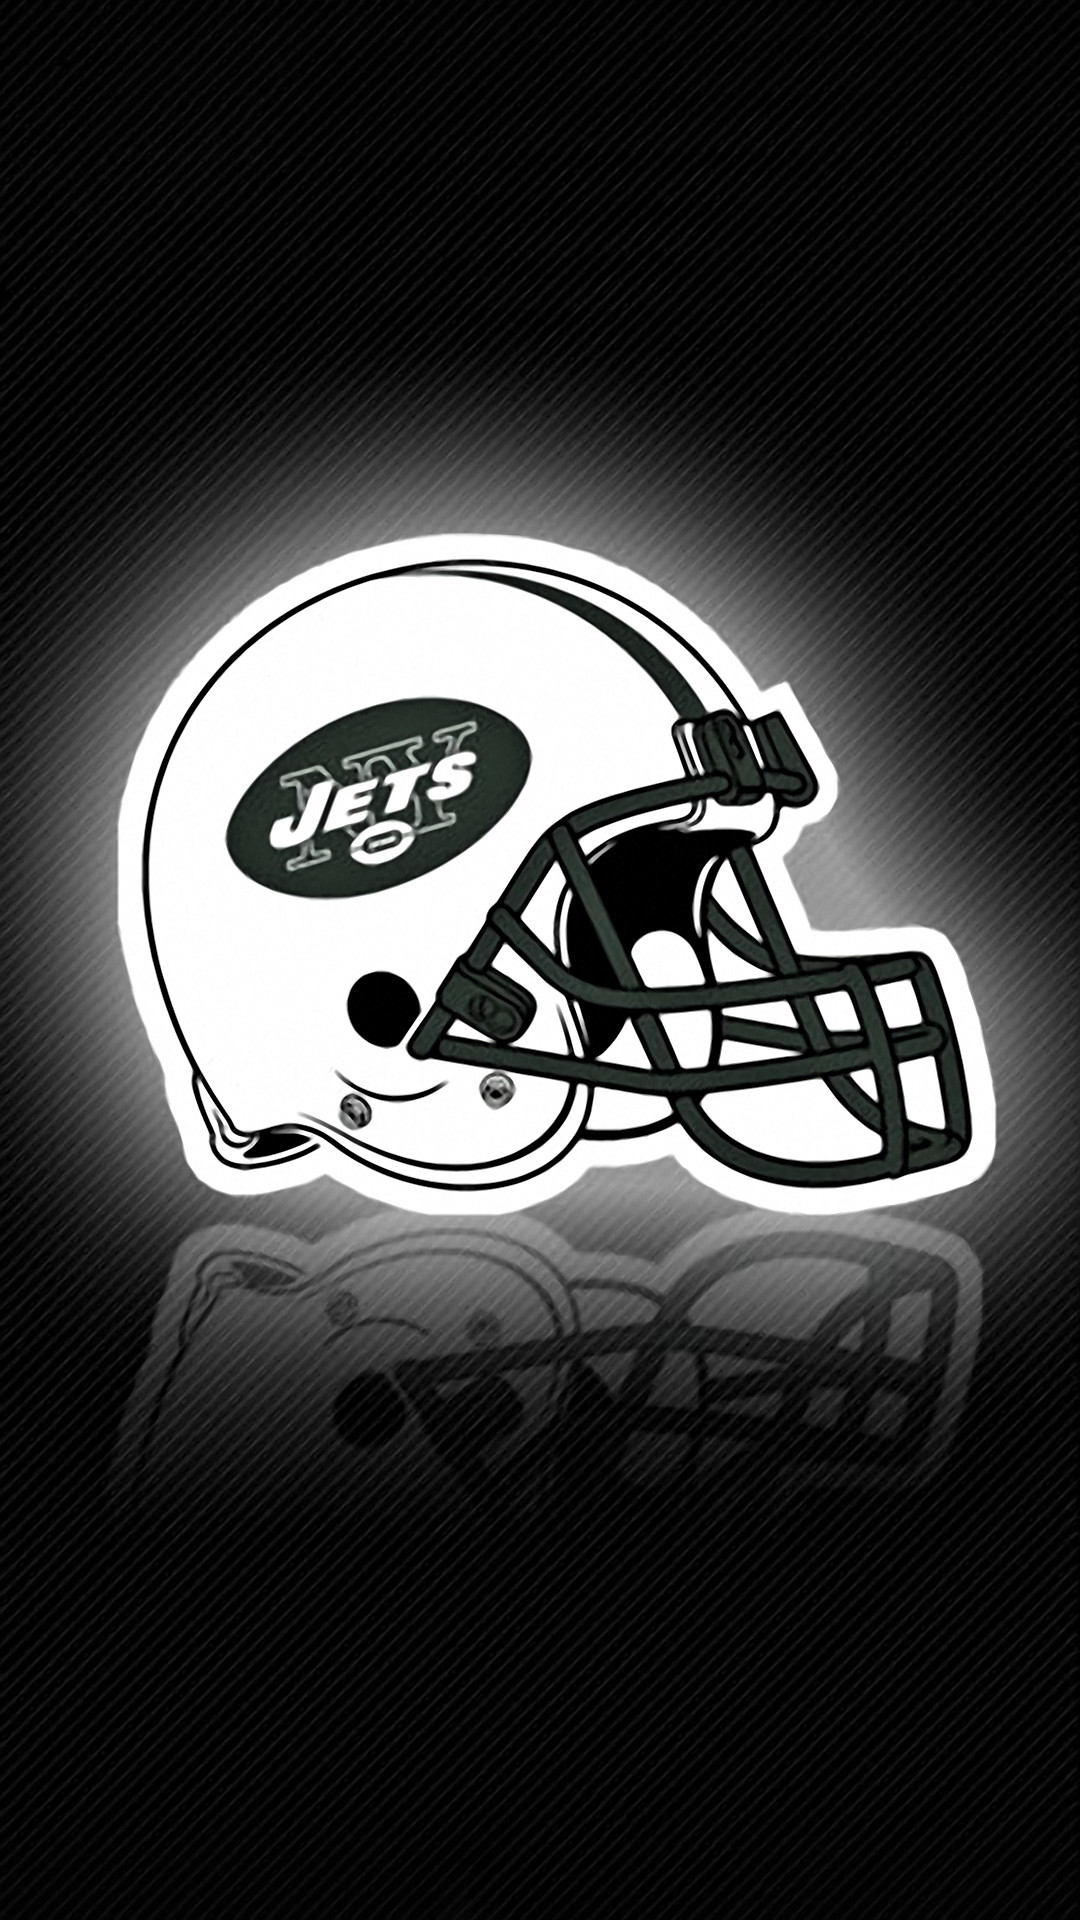 NY Jets iPhone 6 Plus Wallpaper (1080×1920)